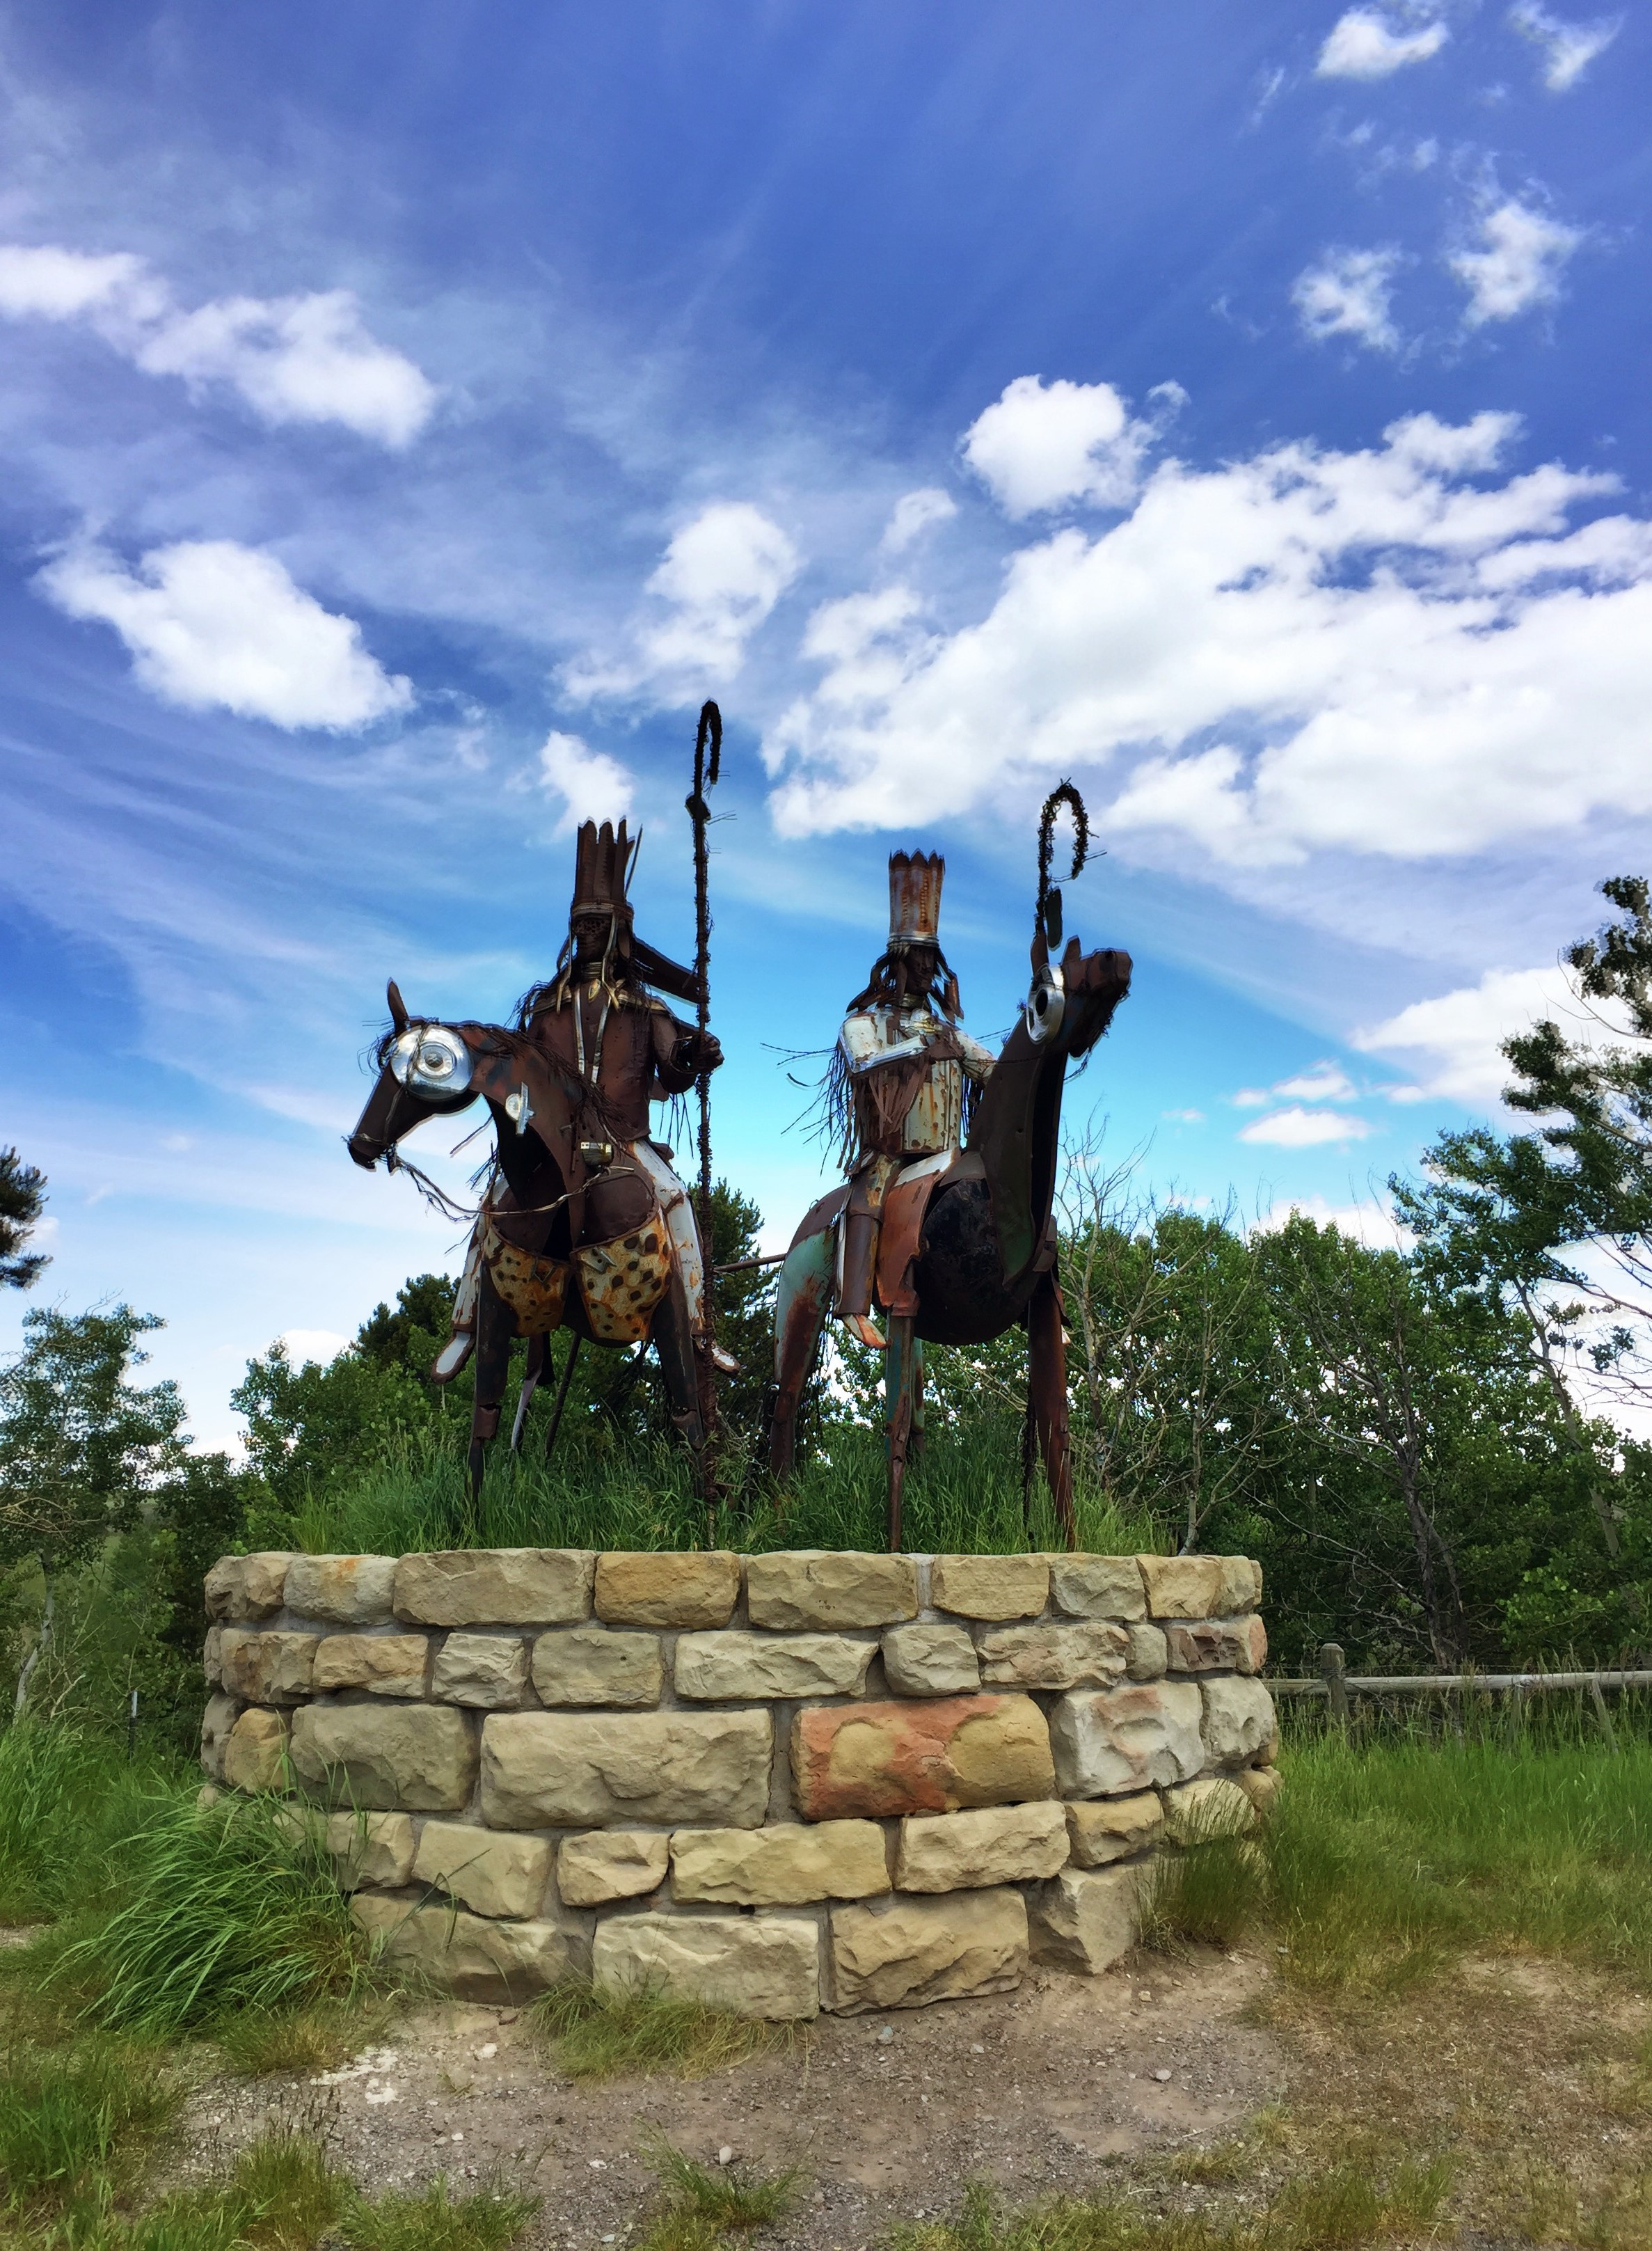 Blackfeet warrior sculptures at one of the entry points on the reservation.